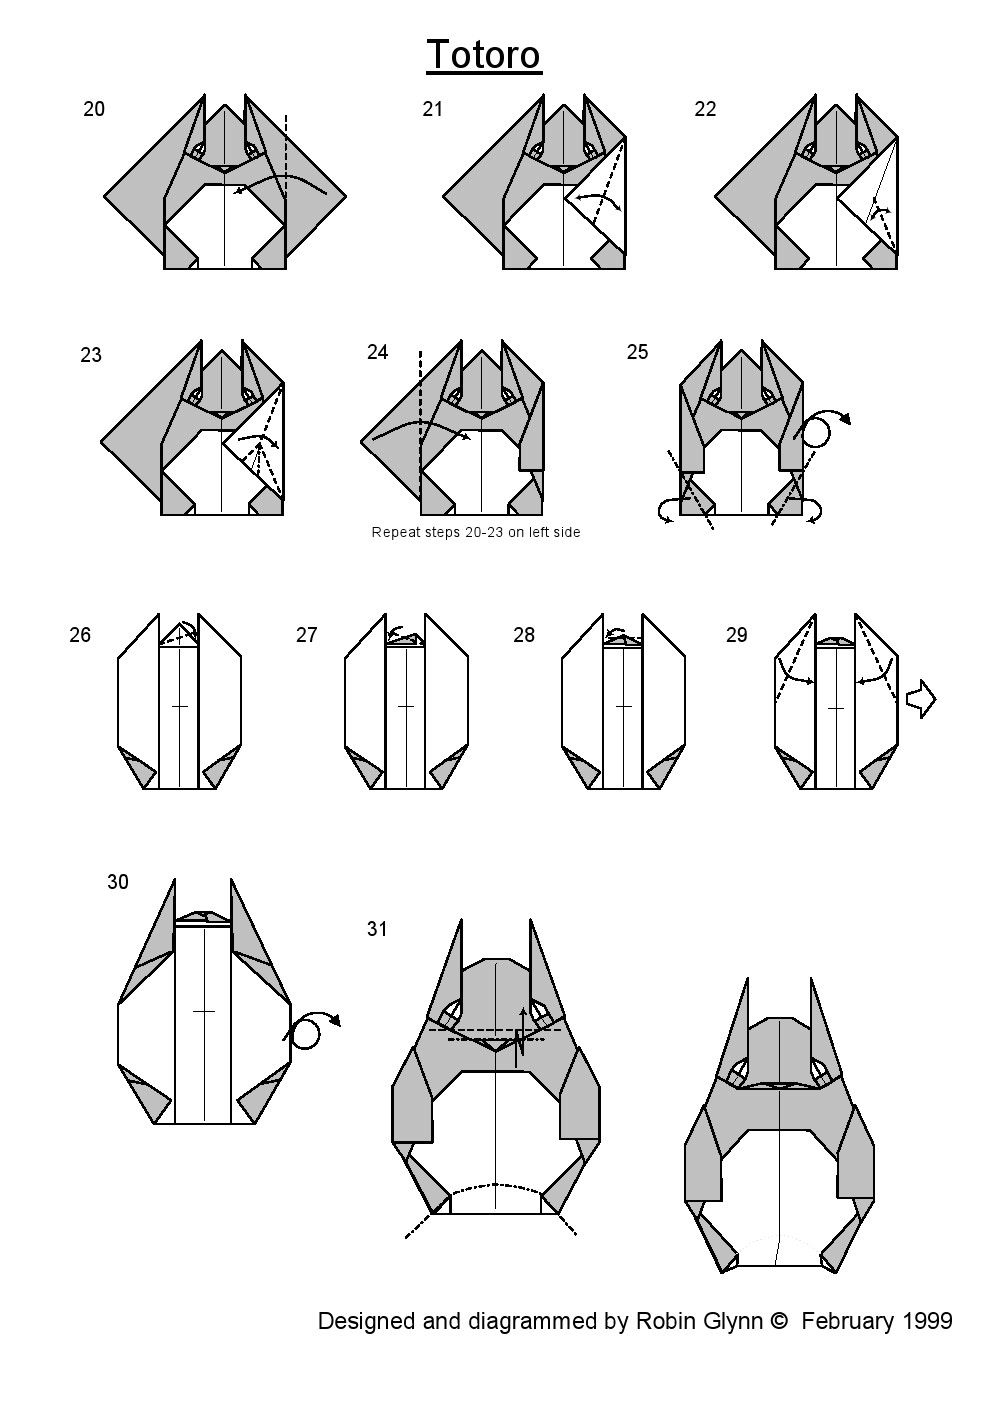 Origami Totoro 2 Instructions For More Photos Diagrams And Tutorials Of His Cool Star War